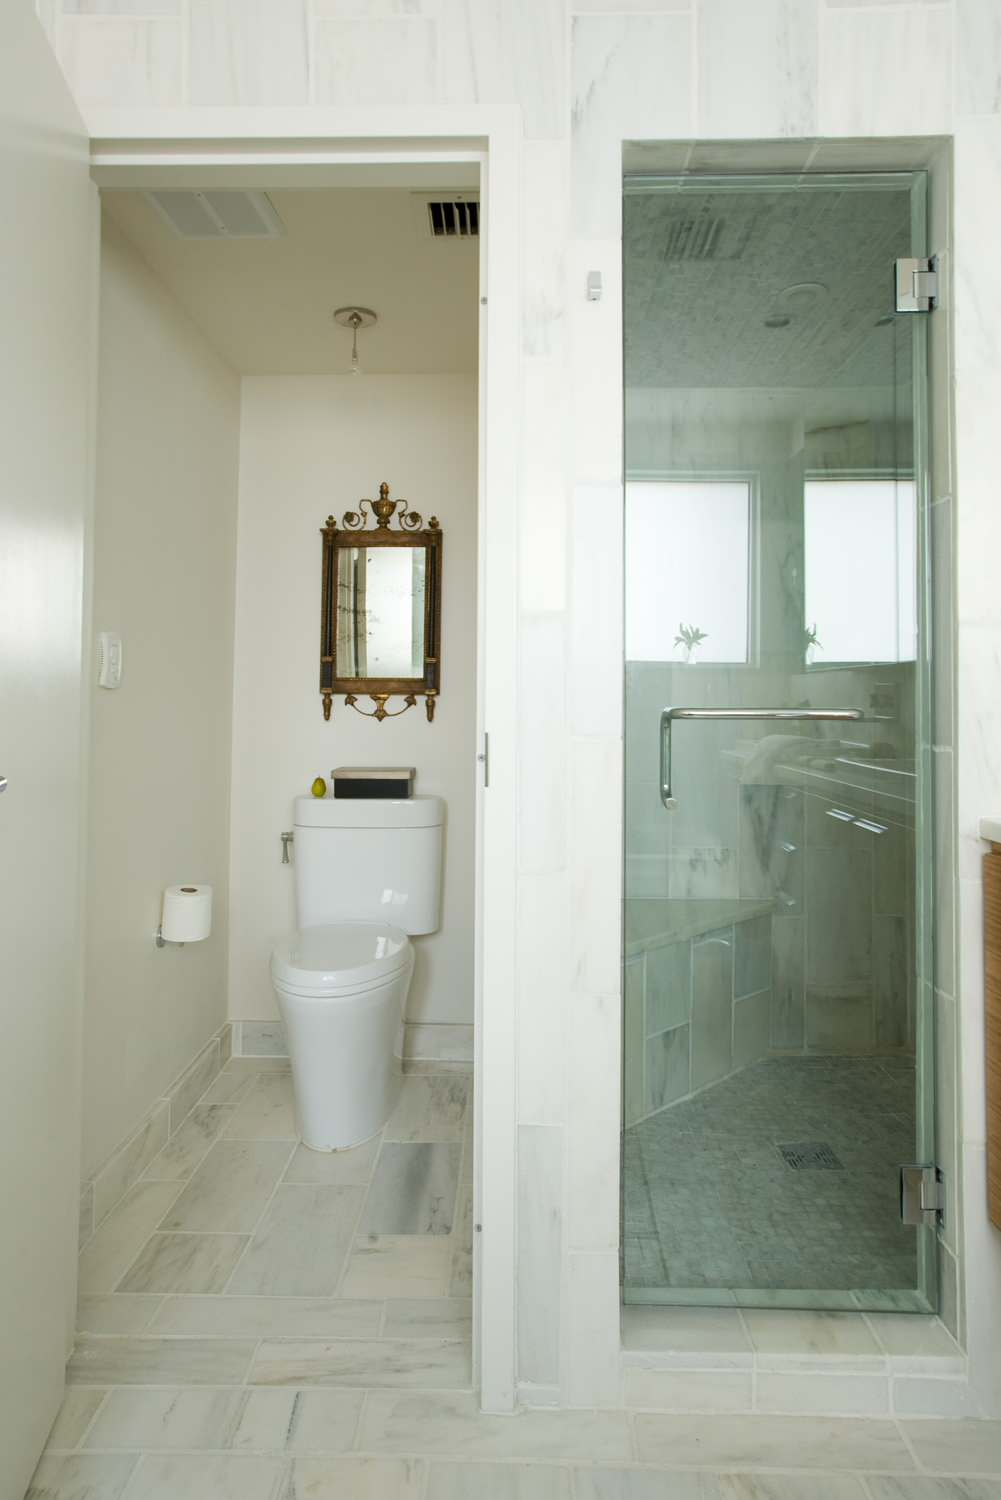 Inspiration for Remodeling Bathroom Using Water Closet: Glass Shower Door And Marble Flooring Also Water Closet Plus Mirror With Neutral Colors For Contemporary Bathroom Plus Walk In Shower Ideas And Small Space Bathroom Ideas